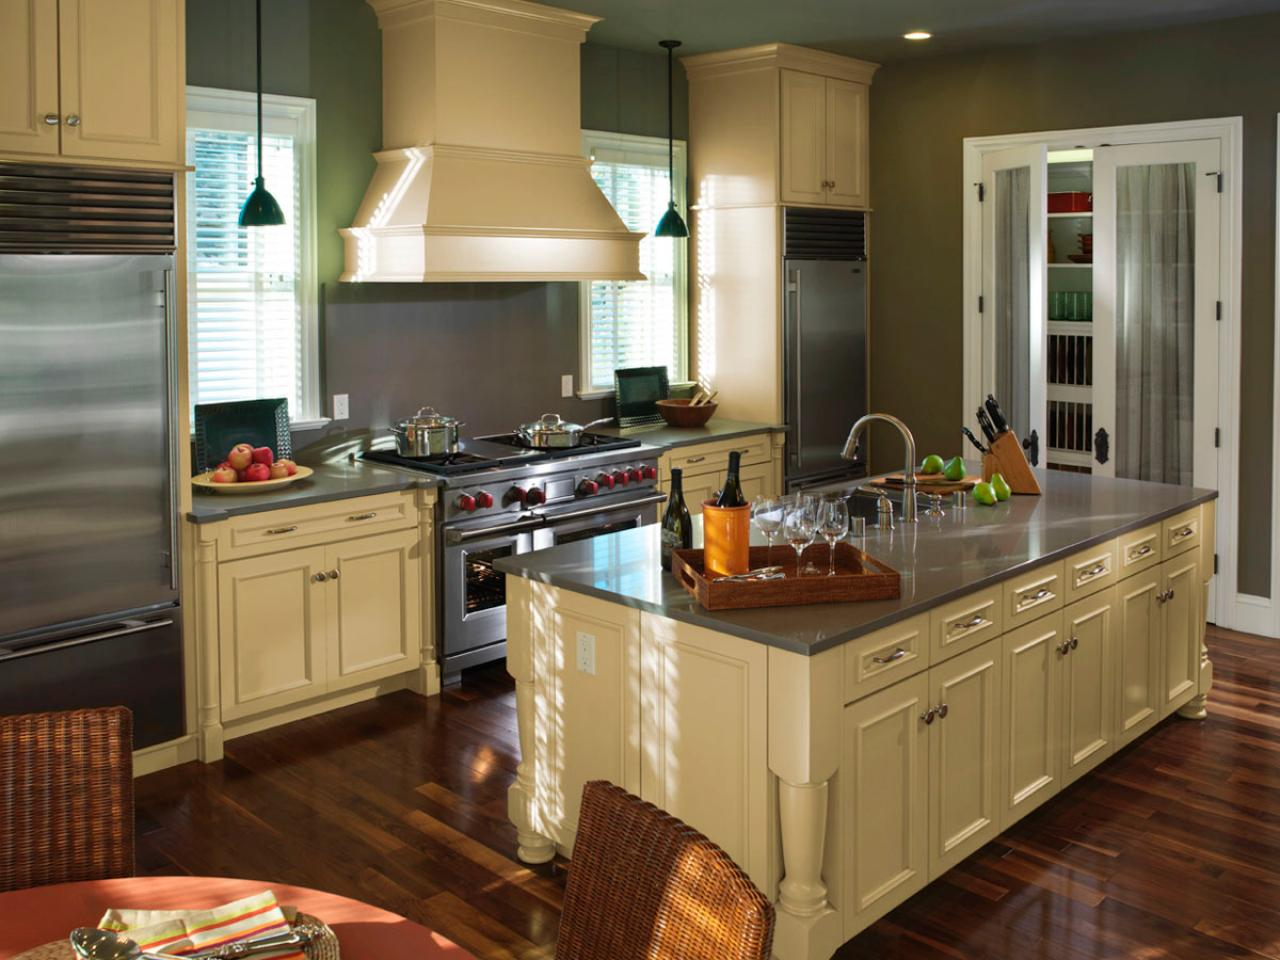 Kitchen Design Layout – Pick One as the Best for Your Kitchen